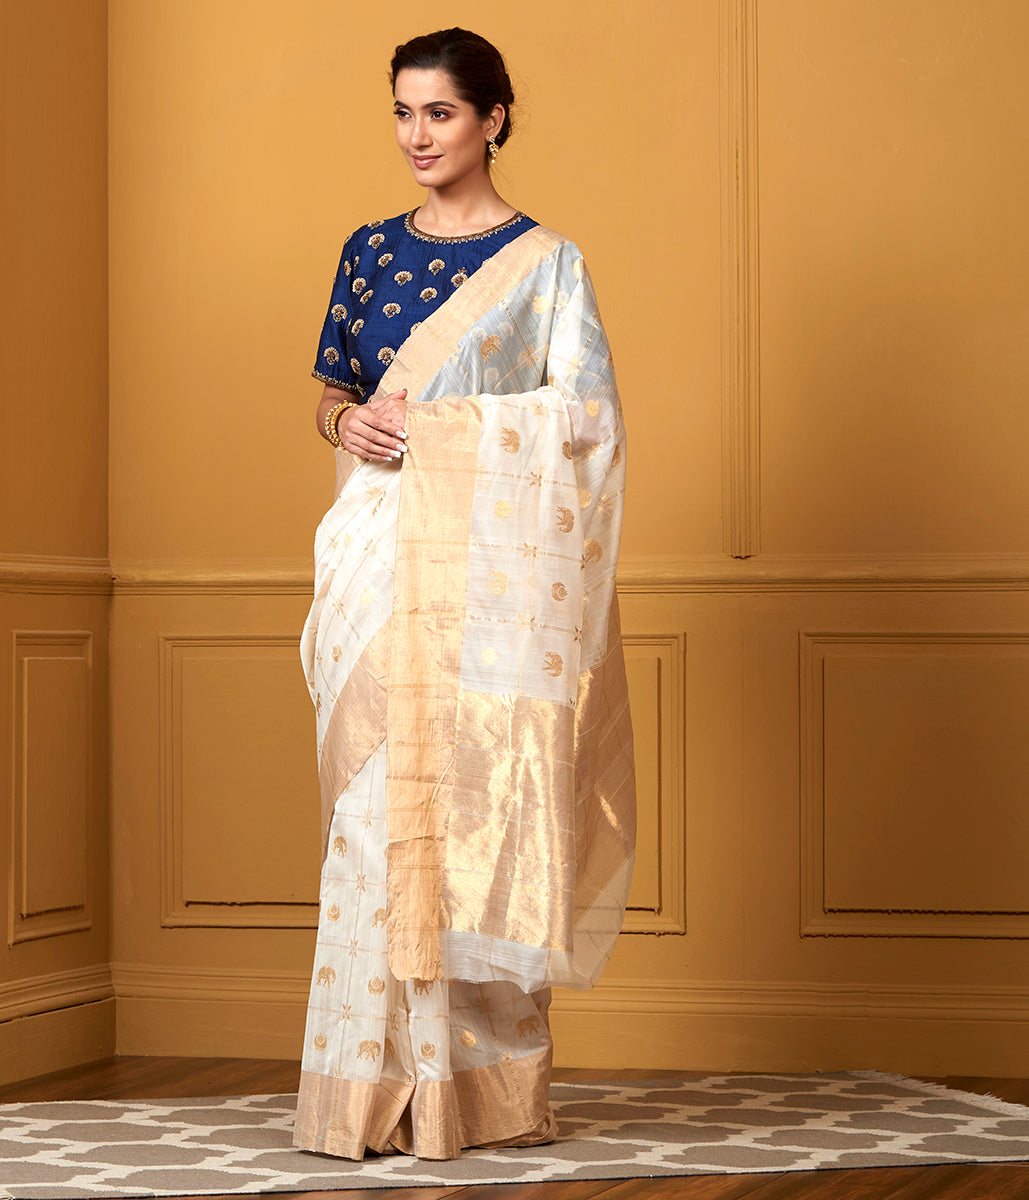 Handwoven White Zari Checks Saree with Elephant Motifs